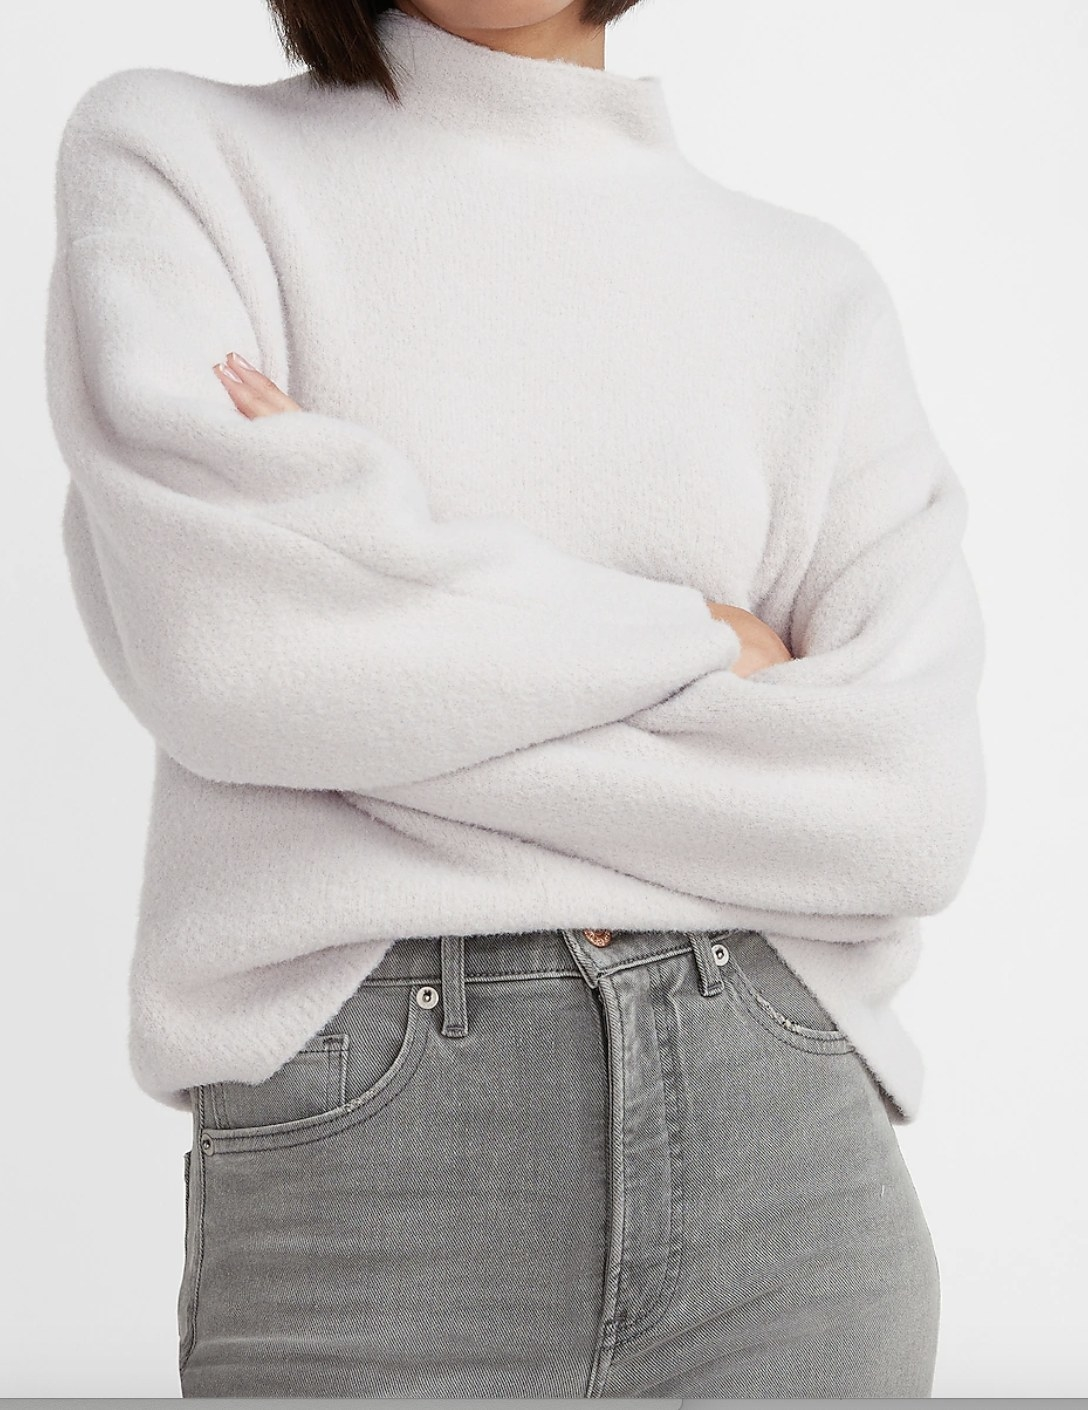 A cozy mock neck sweater in white